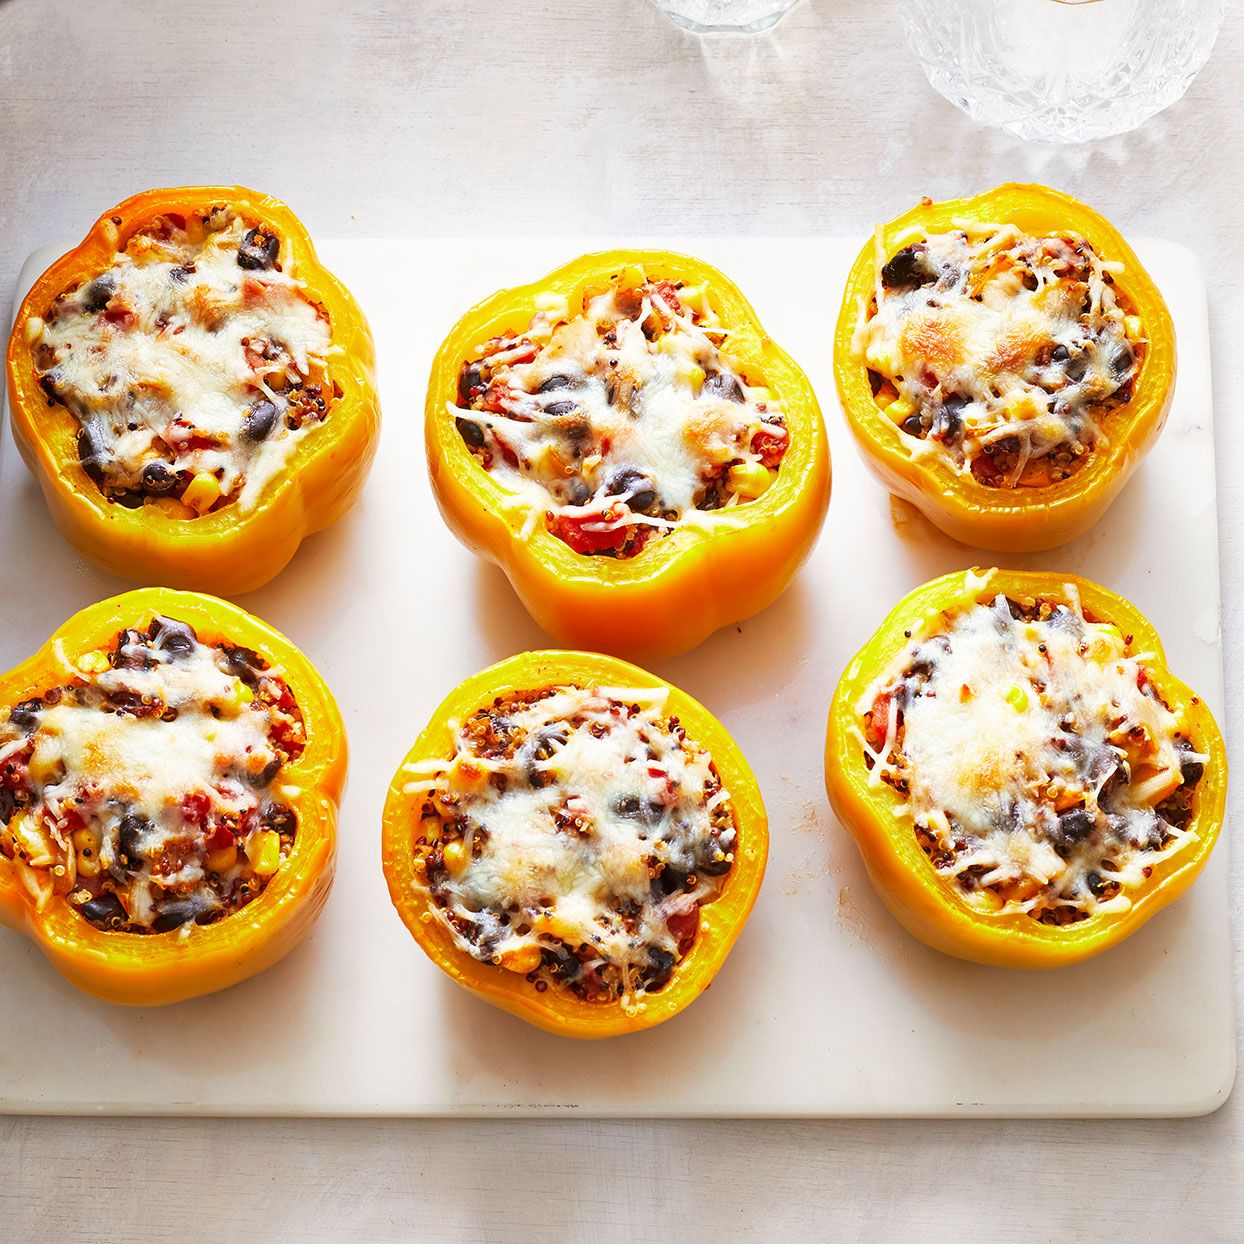 Vegetarian Quinoa Stuffed Peppers Recipe In 2020 Stuffed Peppers Vegetarian Quinoa Stuffed Peppers